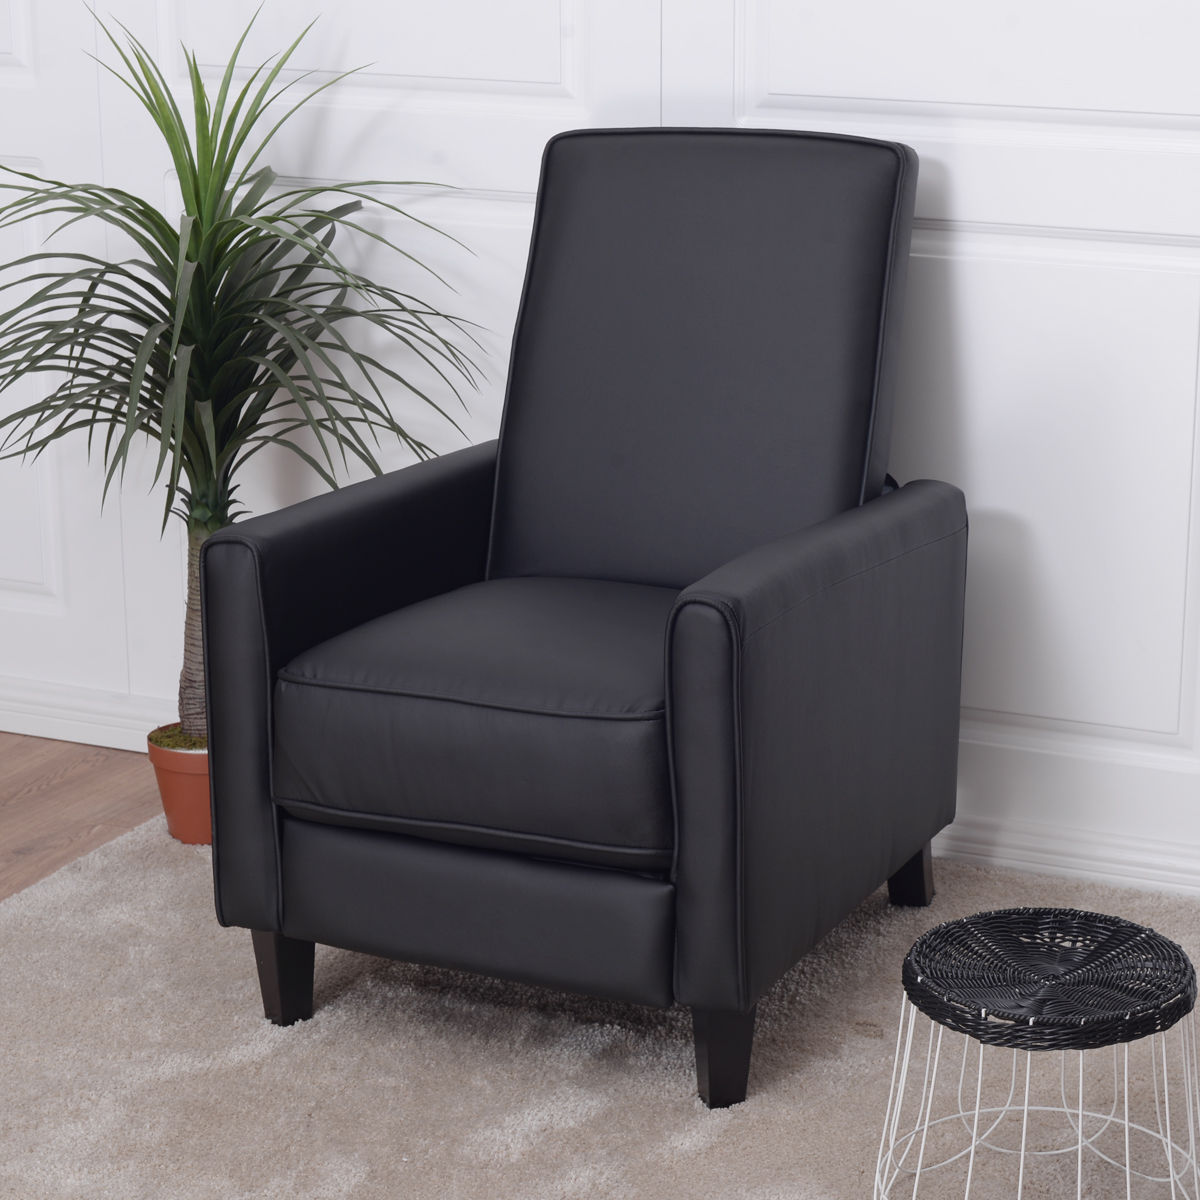 modern black leather recliner chair wheelchair killer giantex single sofa pu club living